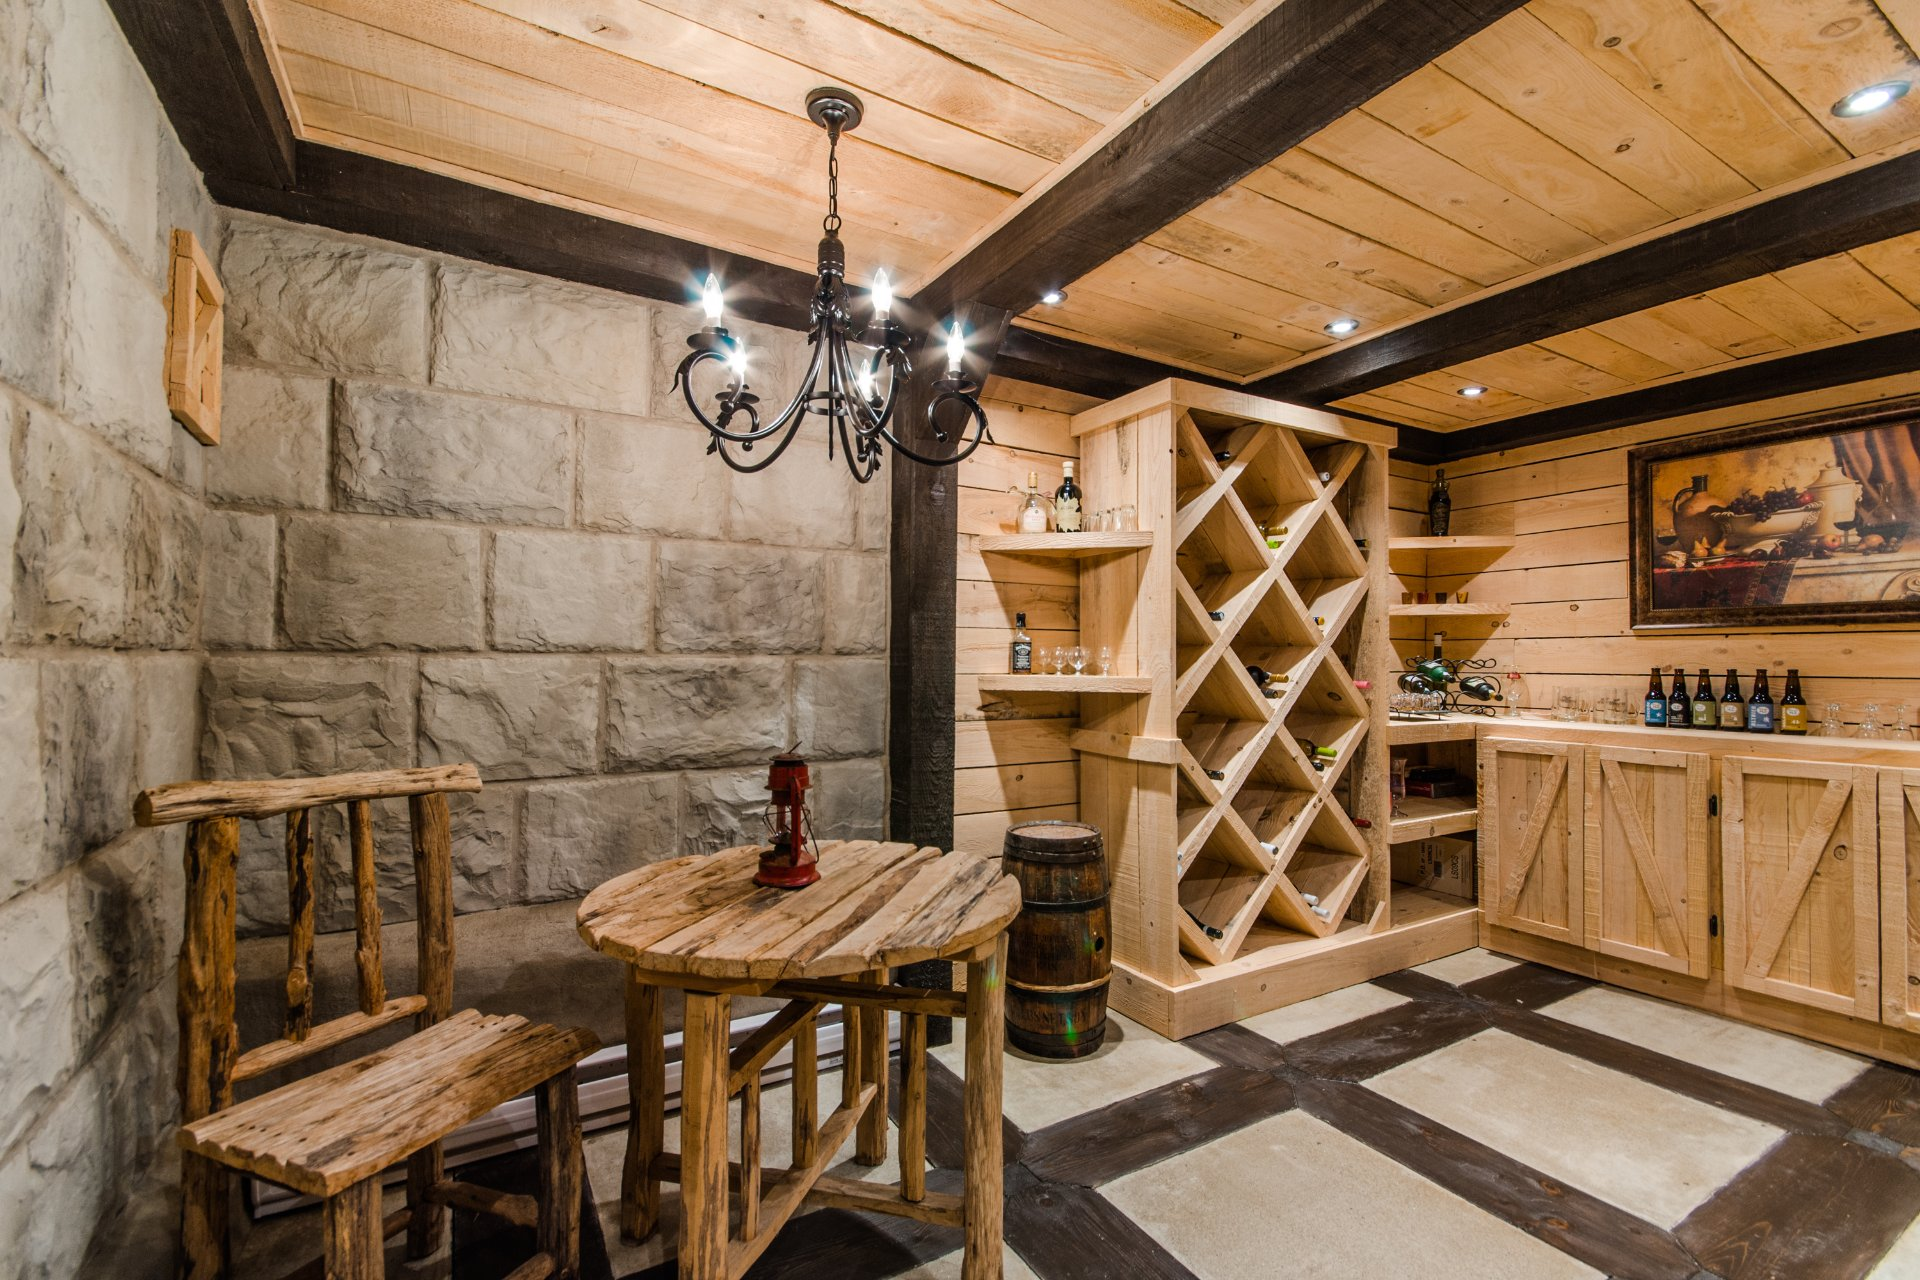 Cave/ chambre froide